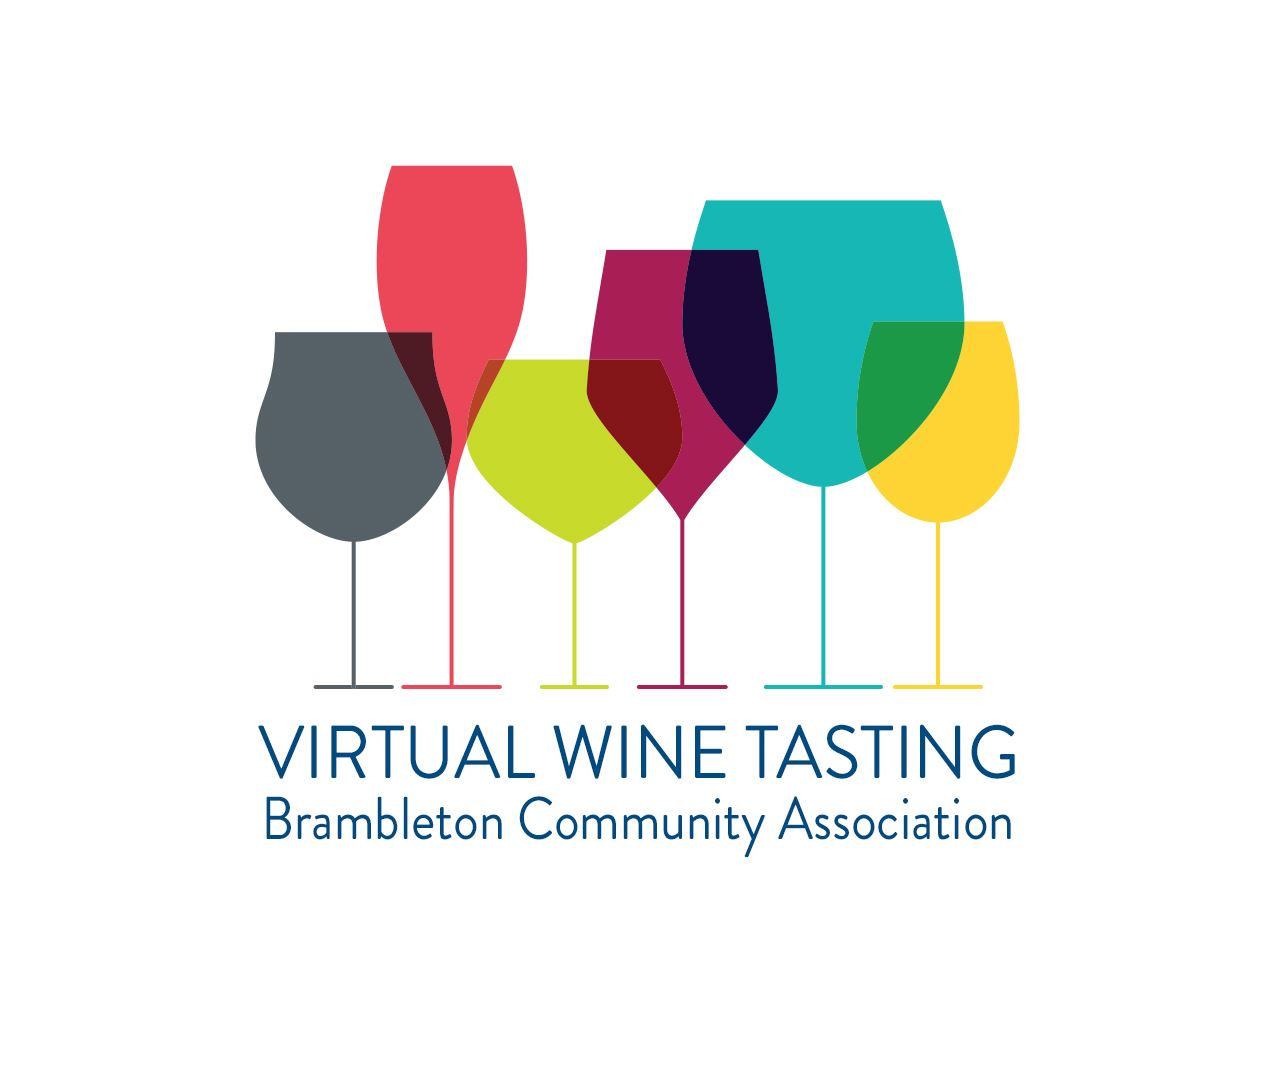 Virtual Wine Tasting Logo